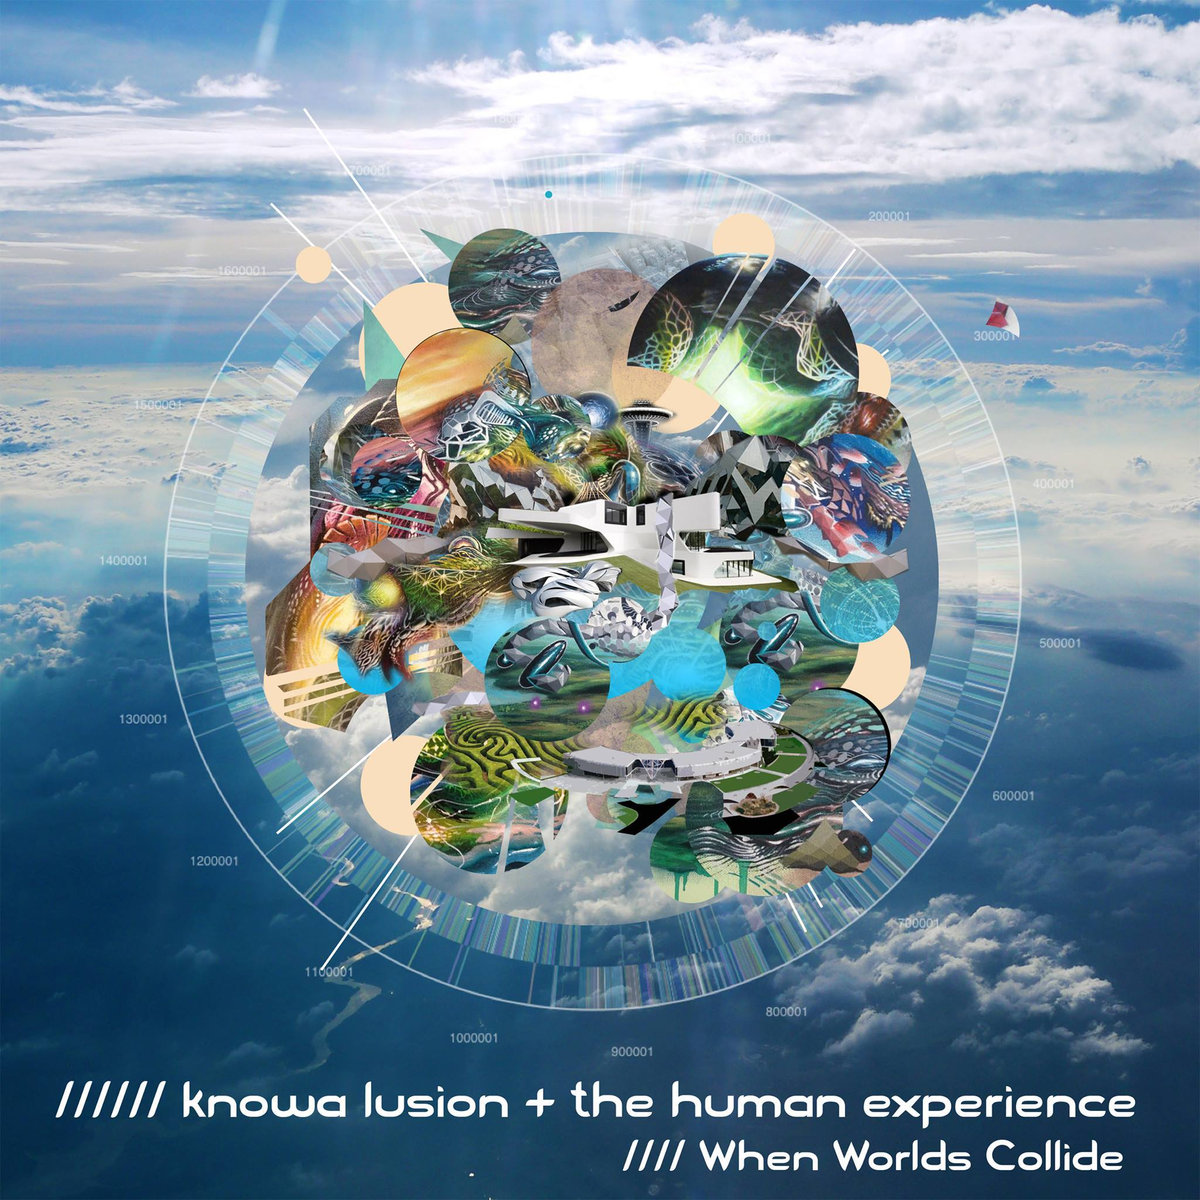 Knowa Lusion and The Human Experience feat. DrumSpyder - Chasing Thunder @ 'When Worlds Collide' album (bass, downtempo)